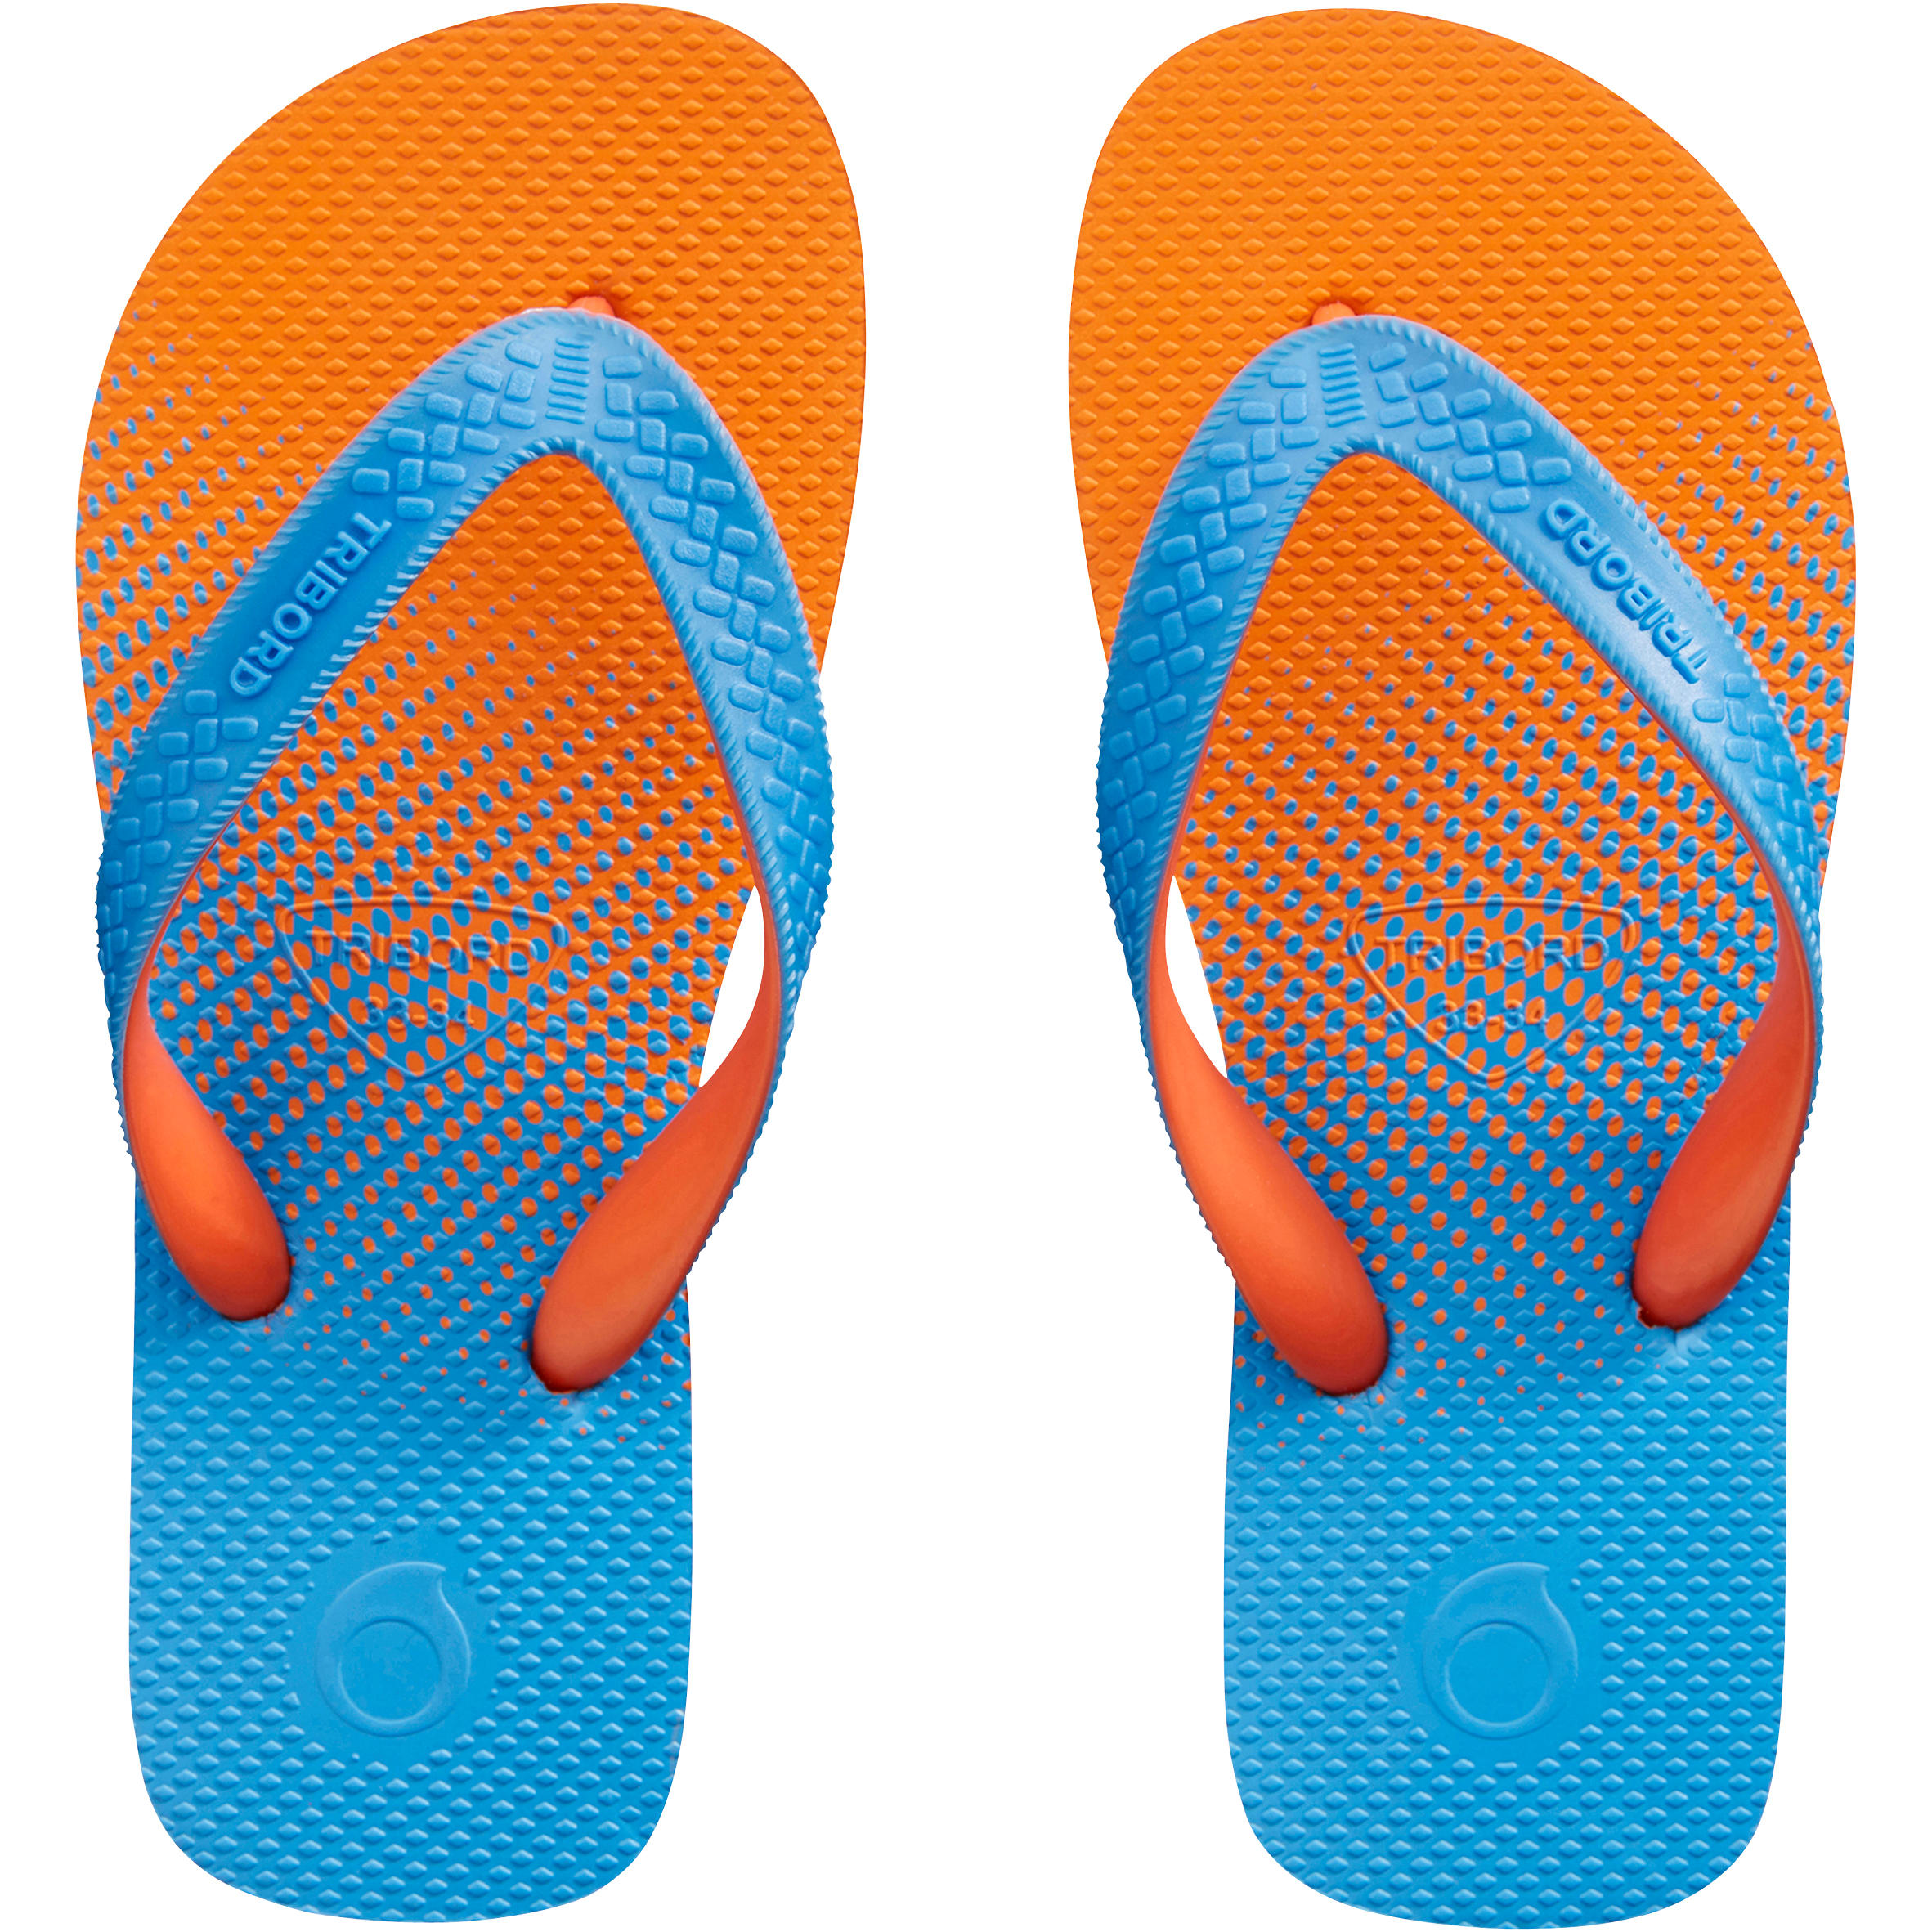 TO 500 B Evo Boys' Flip-Flops - Orange